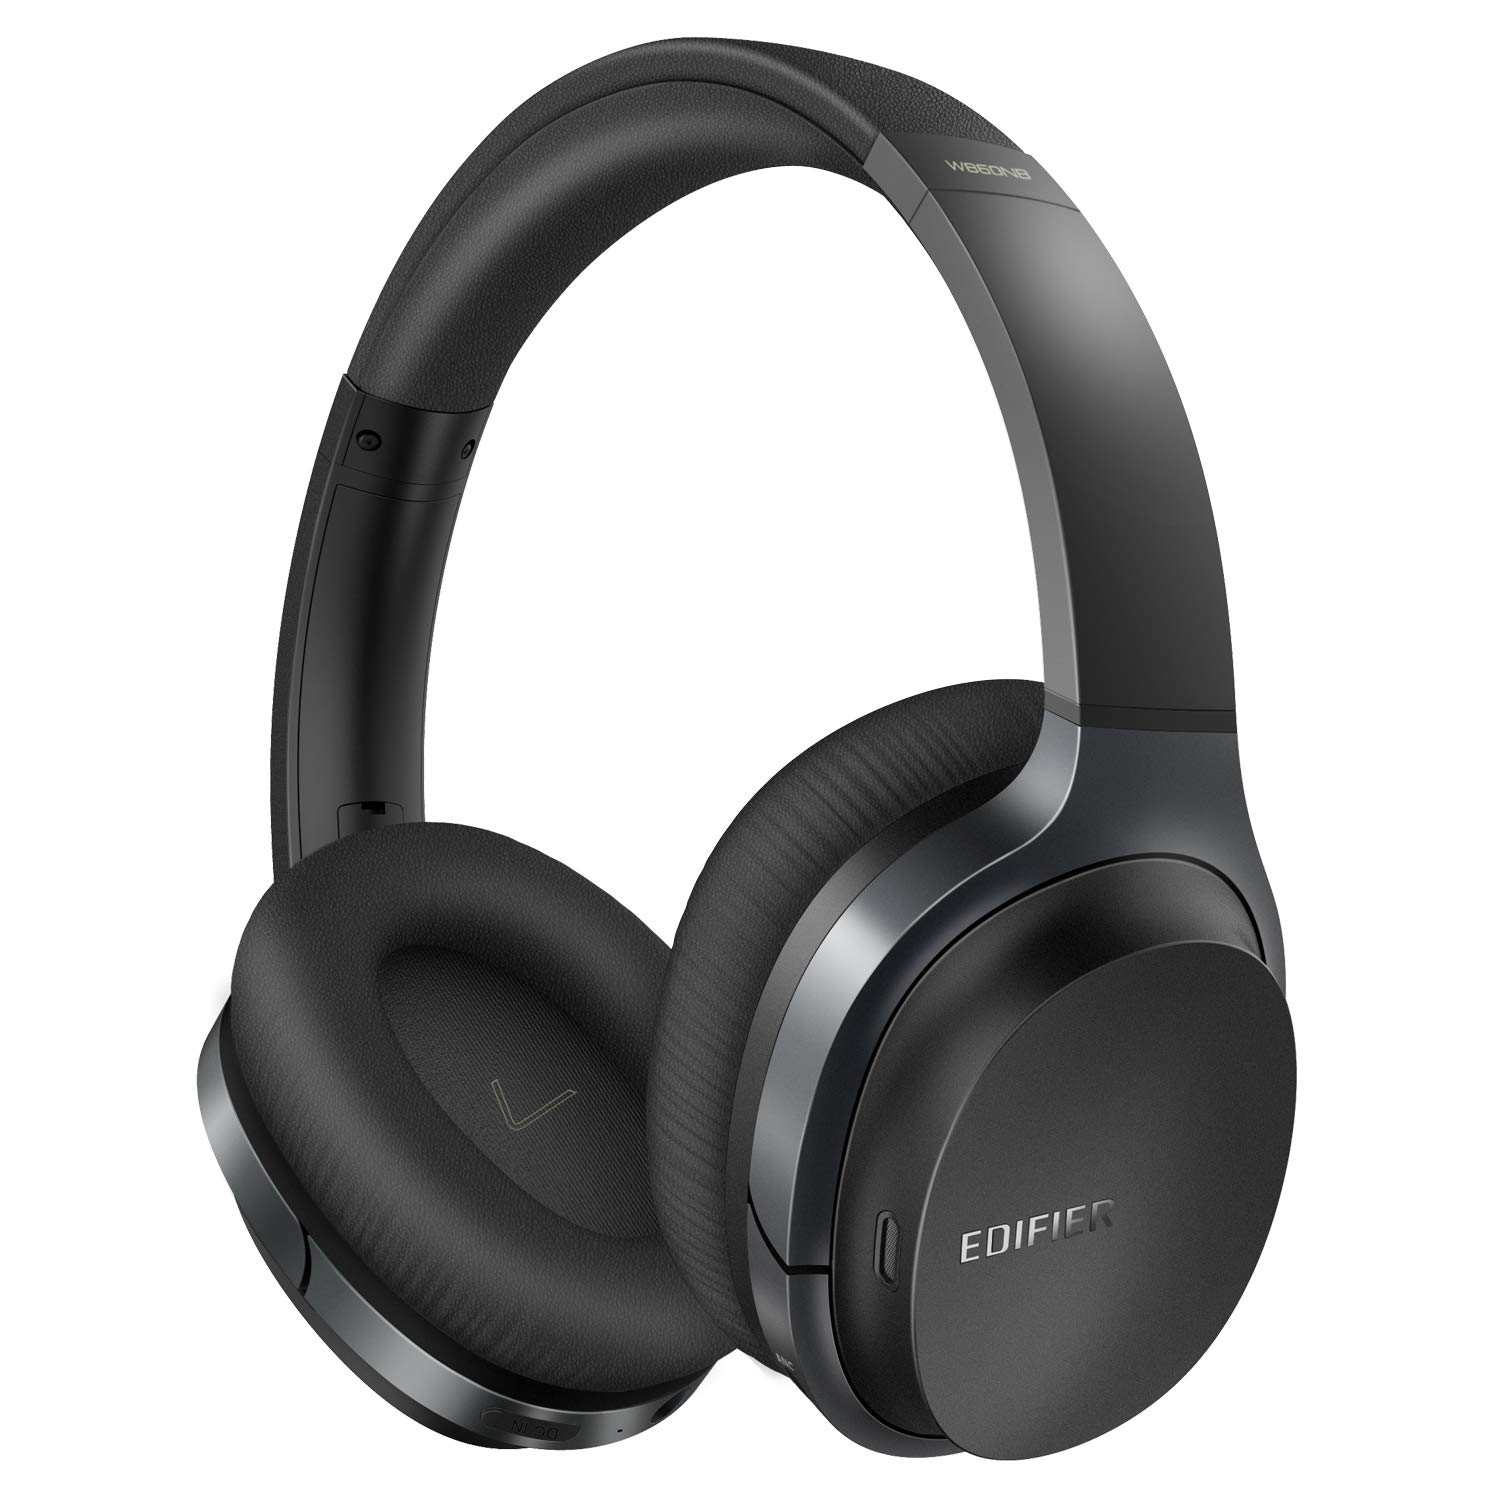 Wireless Active Noise Cancelling Headphones with Microphone Edifier W860NB Hybrid ANC Bluetooth Earphones with Touch Control for TV Computer Cellphones